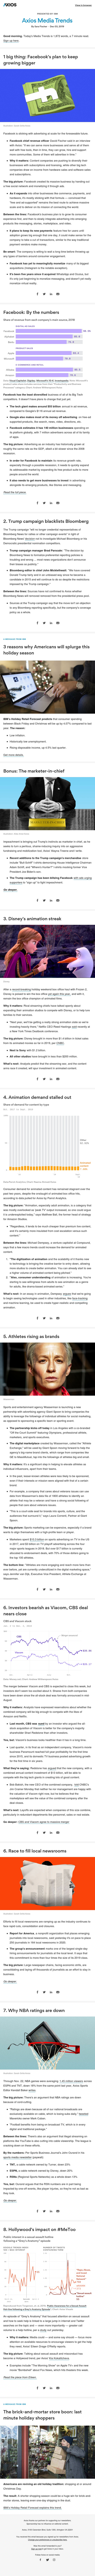 Axios Media Trends: Facebook's growth plan — Athletes as brands — Animation nation